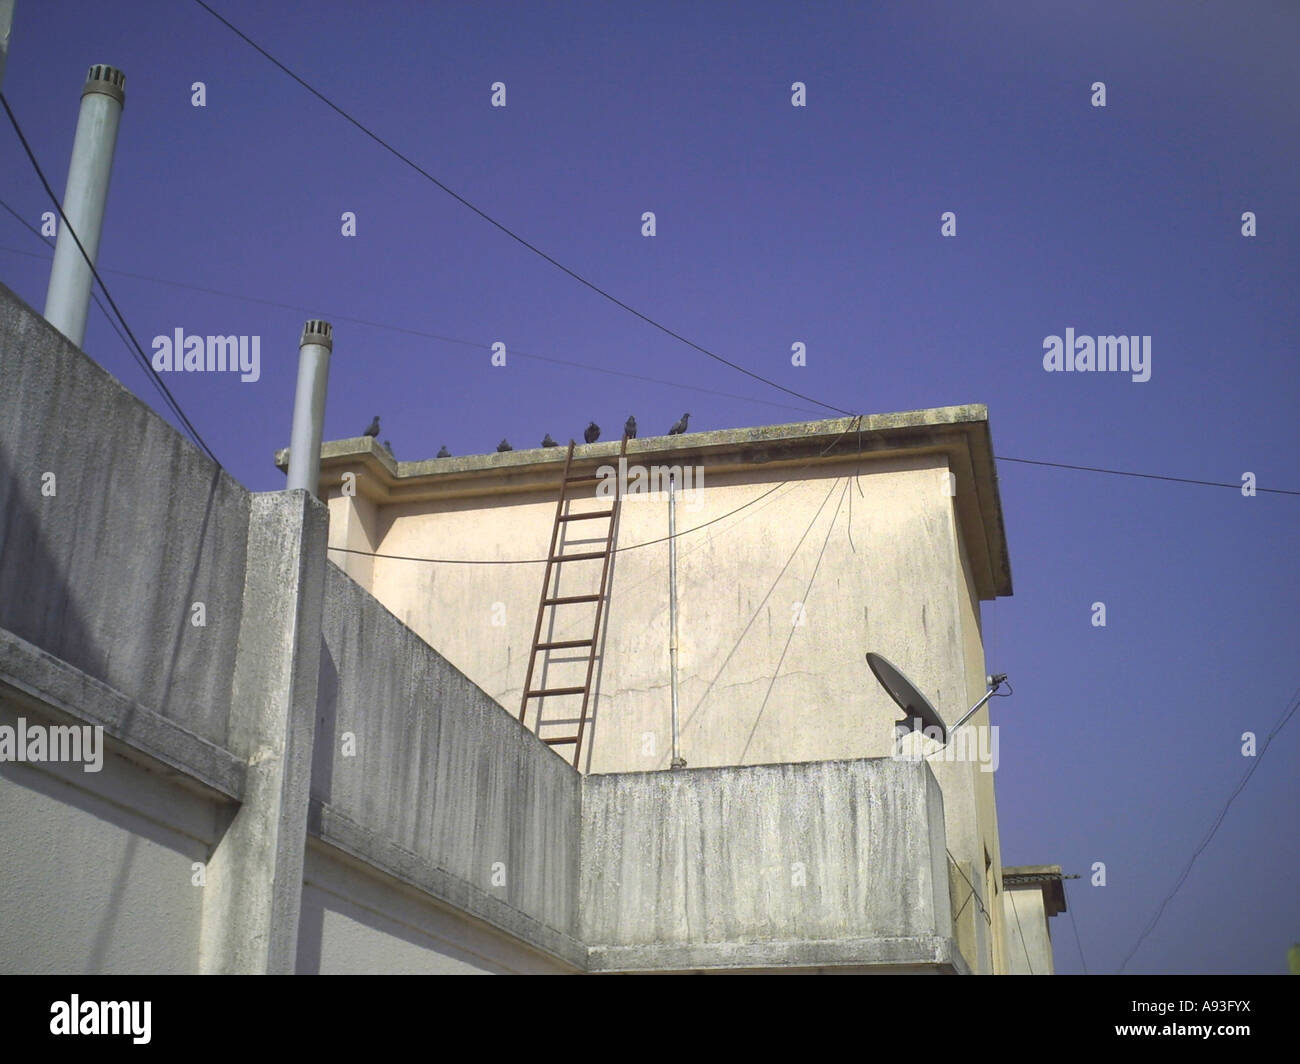 A ladder going towards an overhead water storage tank on a building terrace. Pune Maharashtra India. & A ladder going towards an overhead water storage tank on a building ...